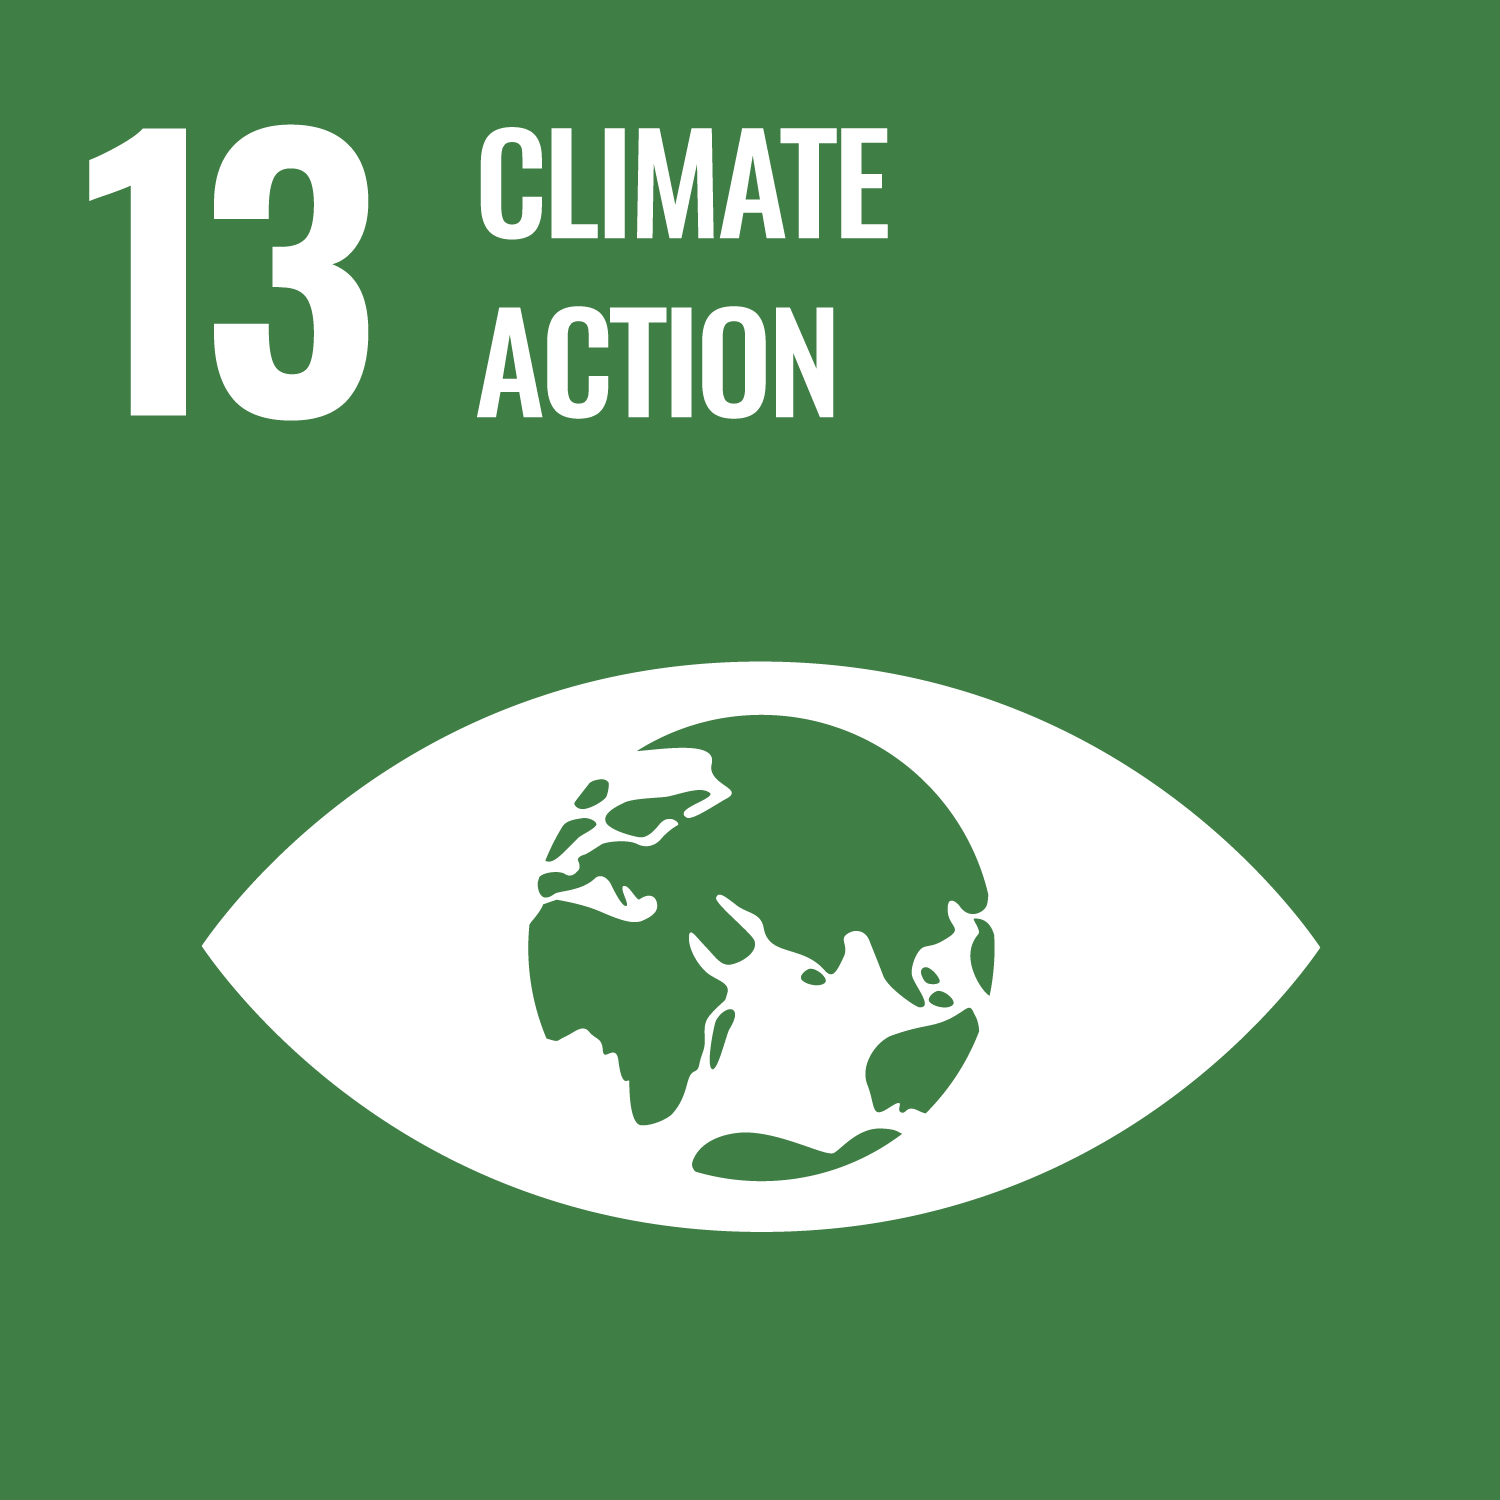 Climate action graphic